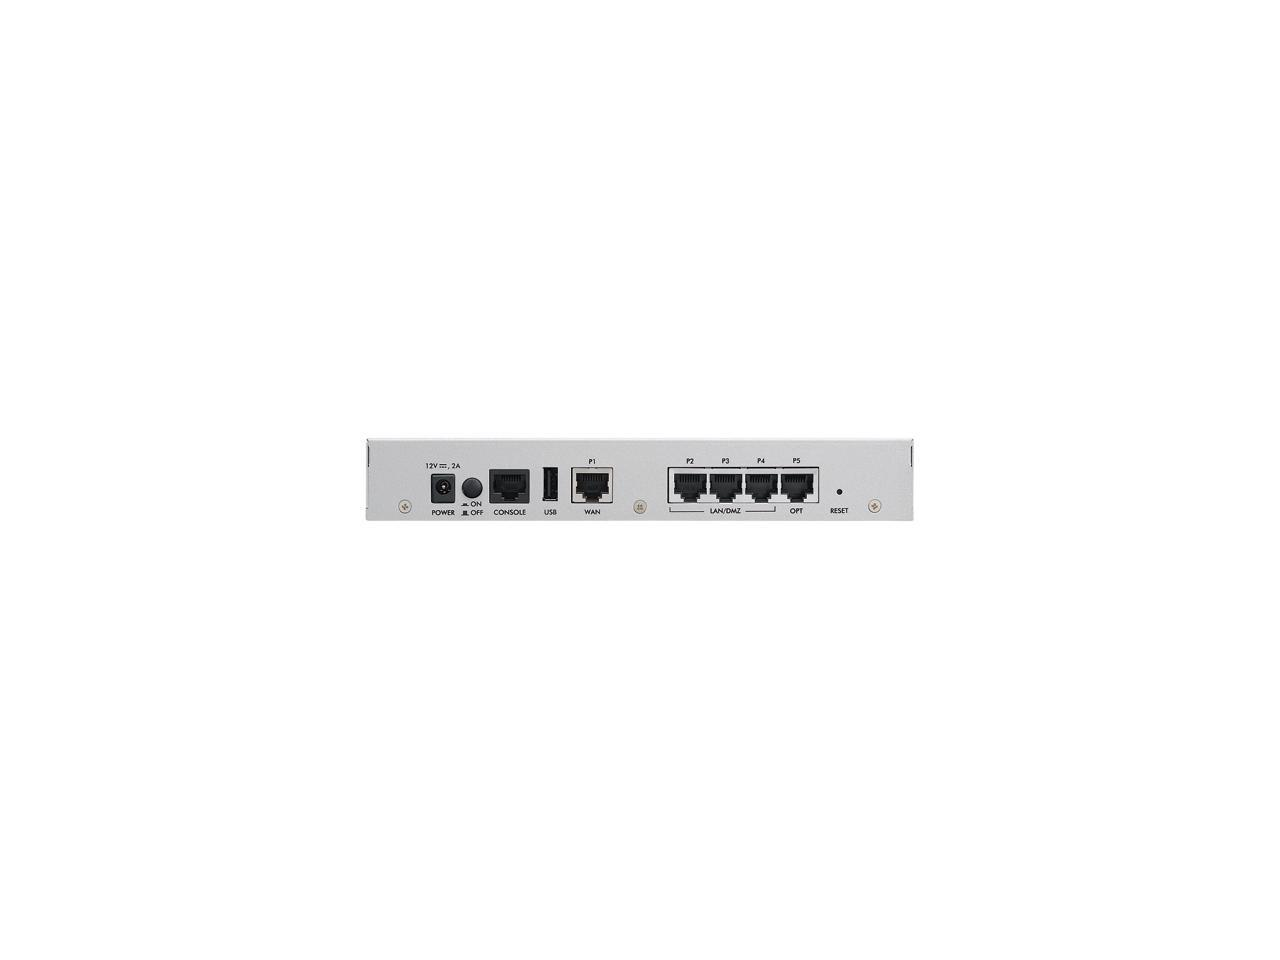 Details about ZyXEL USG40-NB Security Firewall (Hardware only)